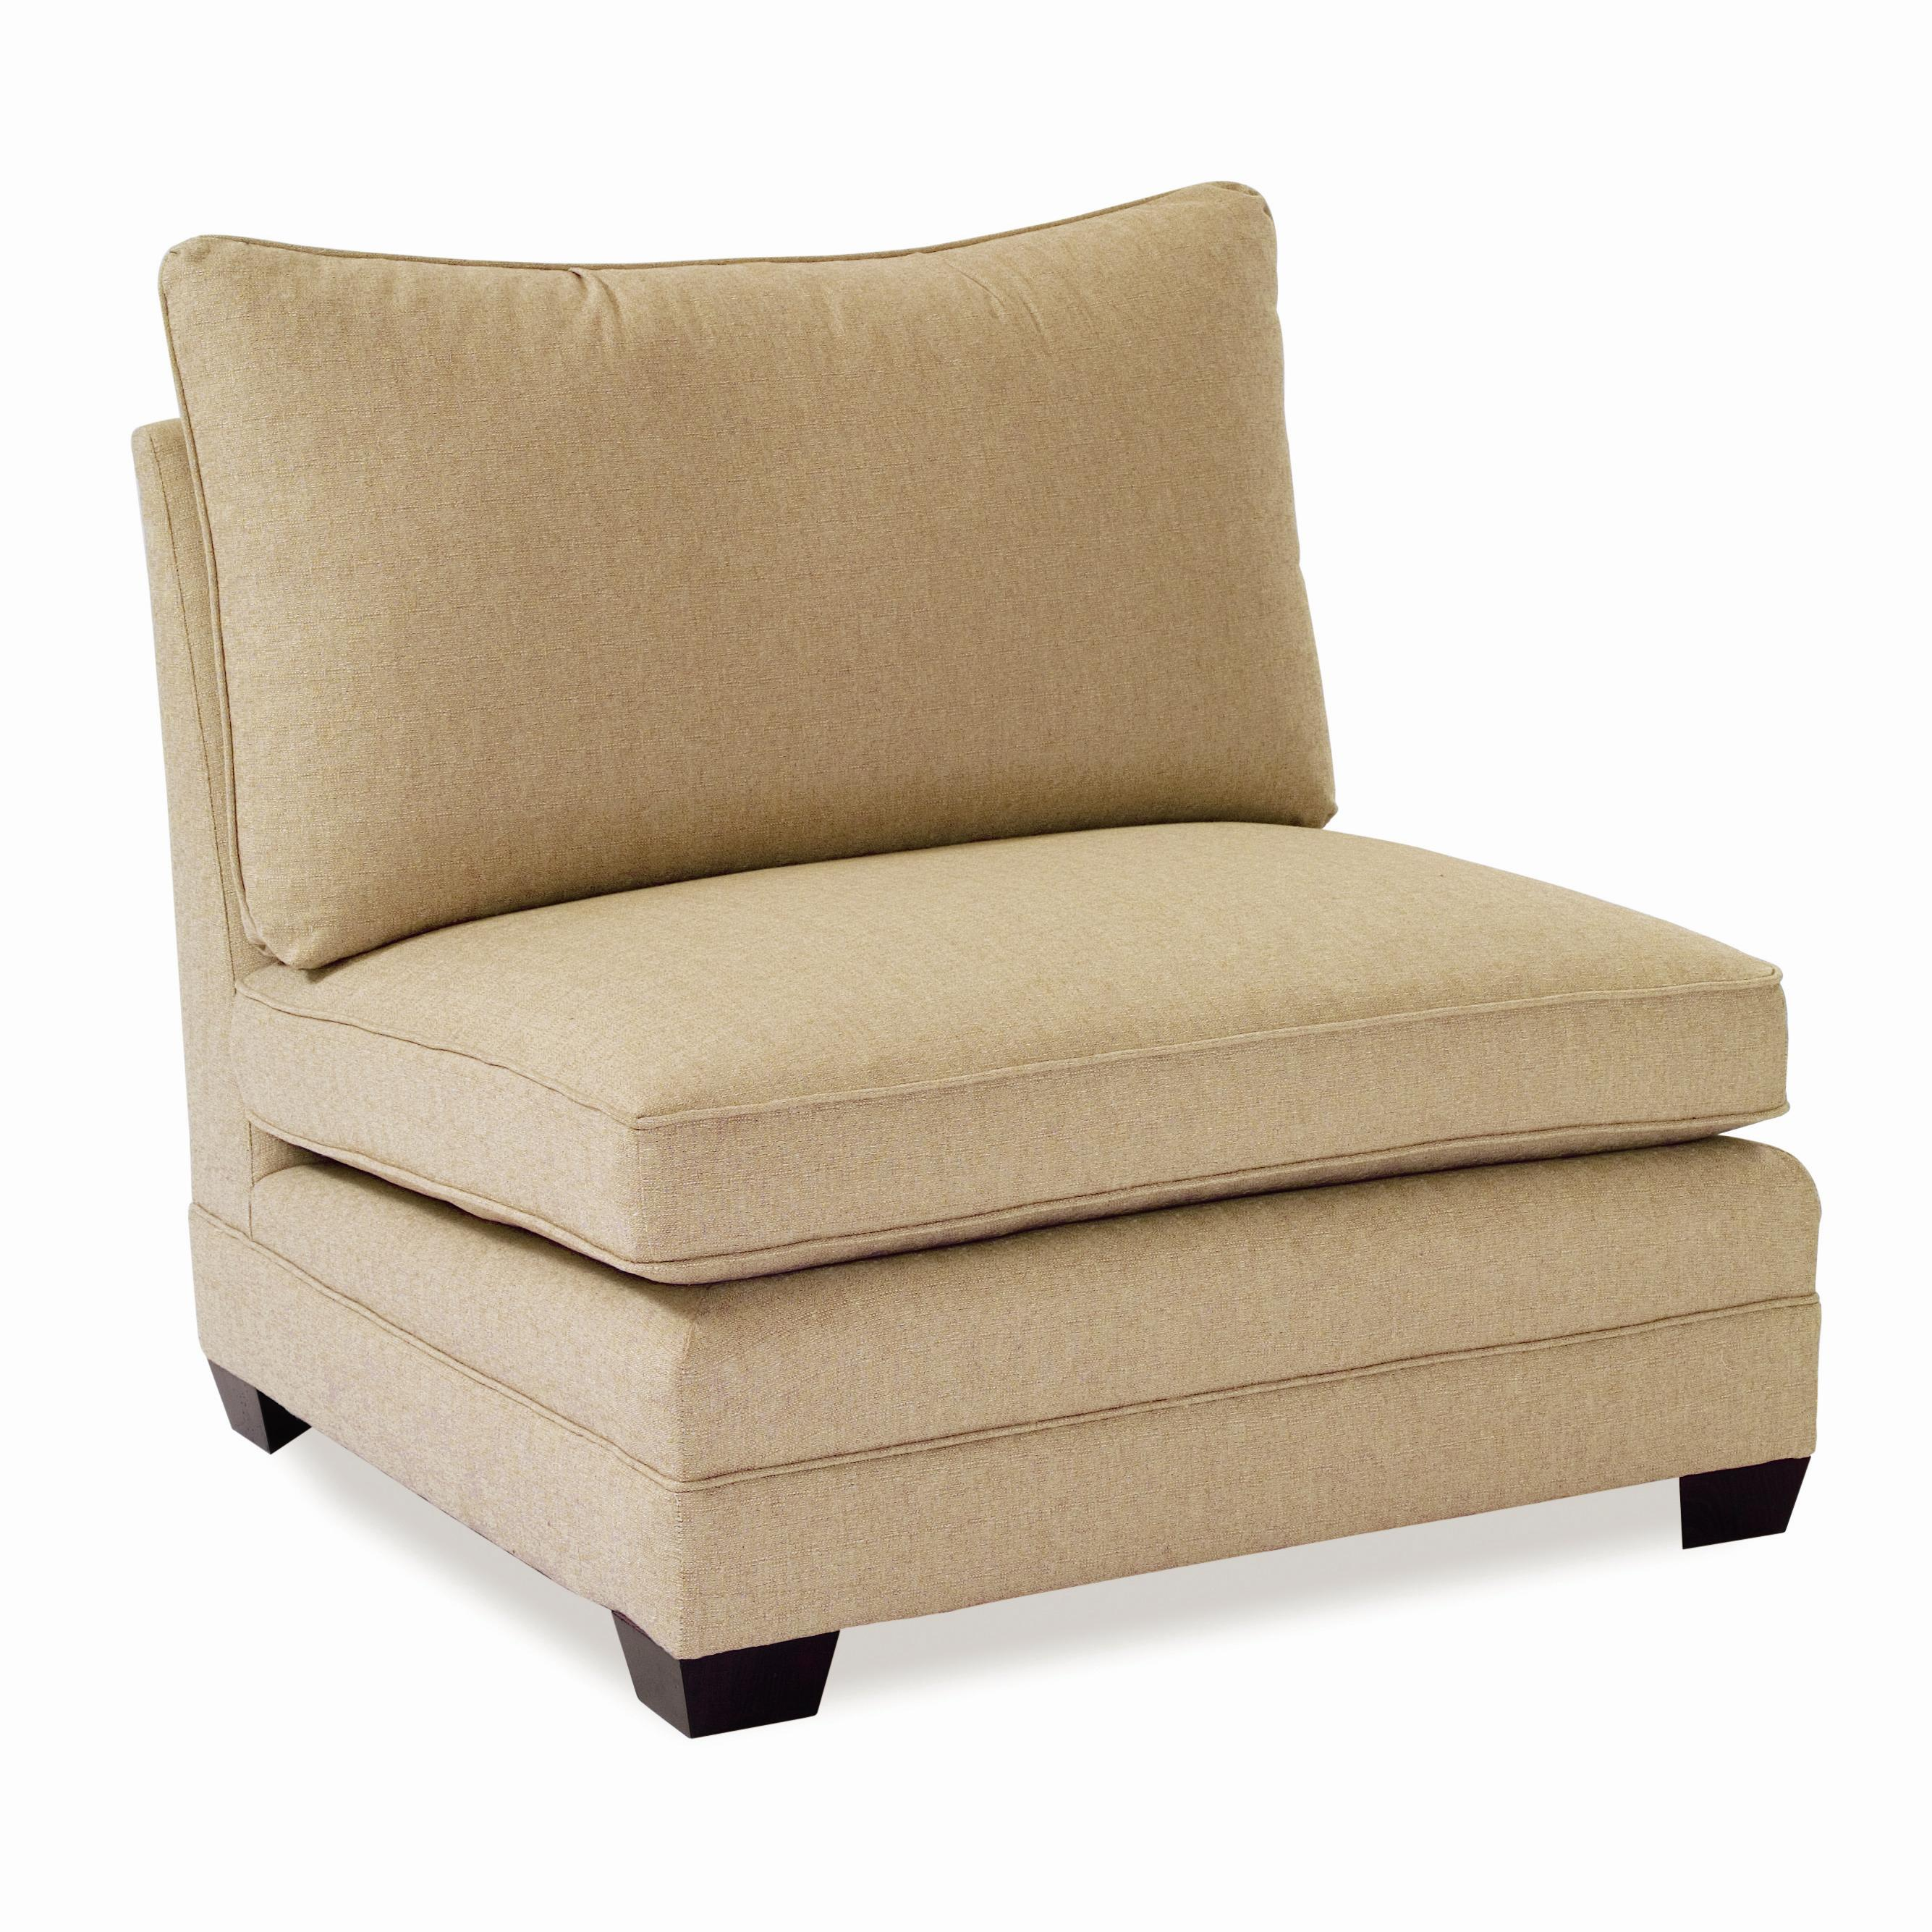 armless living room chairs furiture large chair by sam moore wolf and gardiner furniture